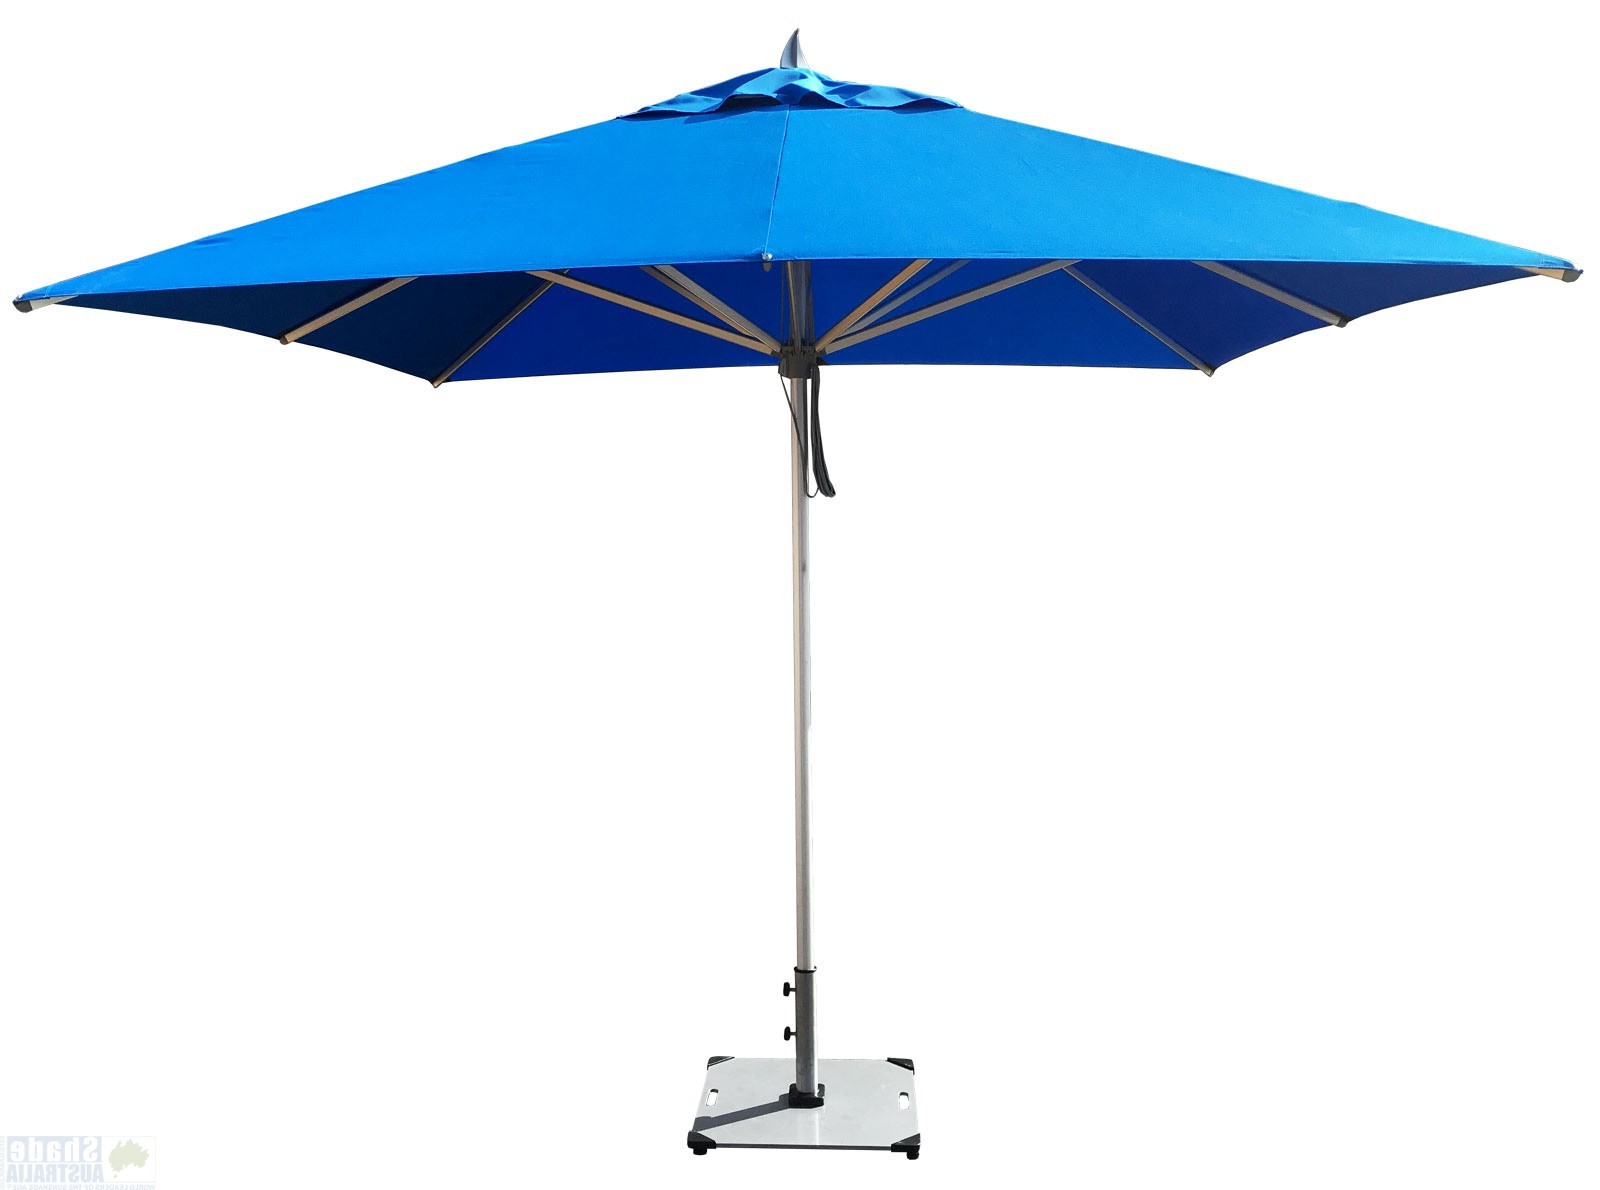 Hurricane Premium Parasol Intended For Most Up To Date Italian Market Umbrellas (Gallery 8 of 20)